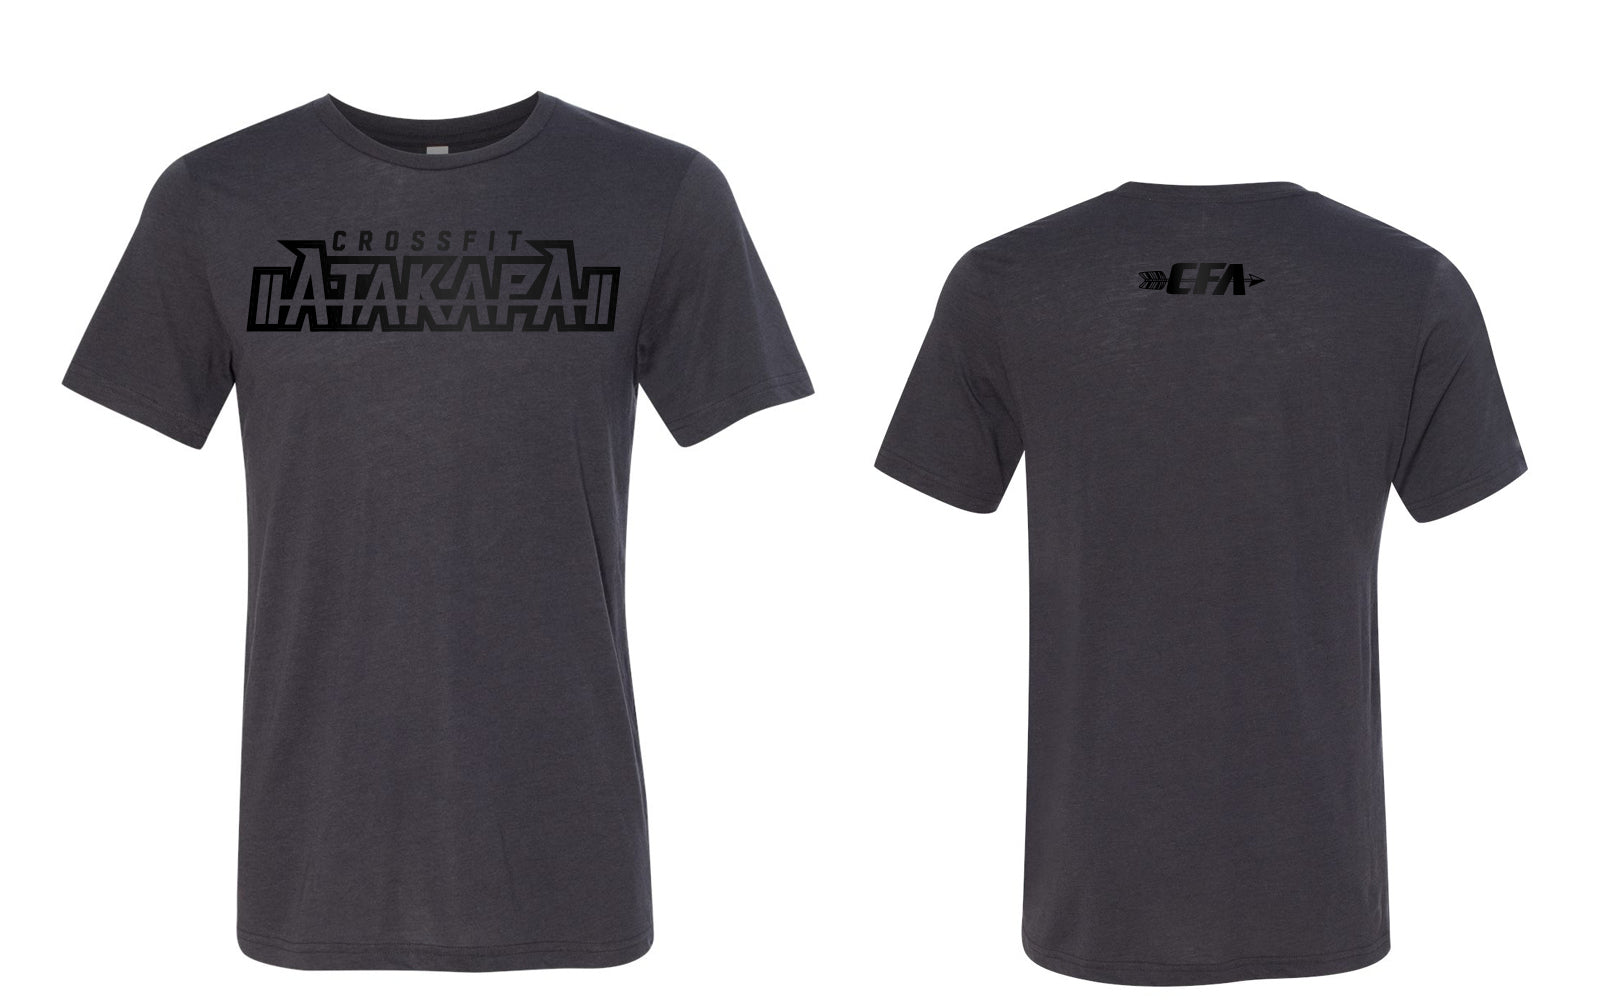 CrossFit Atakapa:  Black on Grey Tee